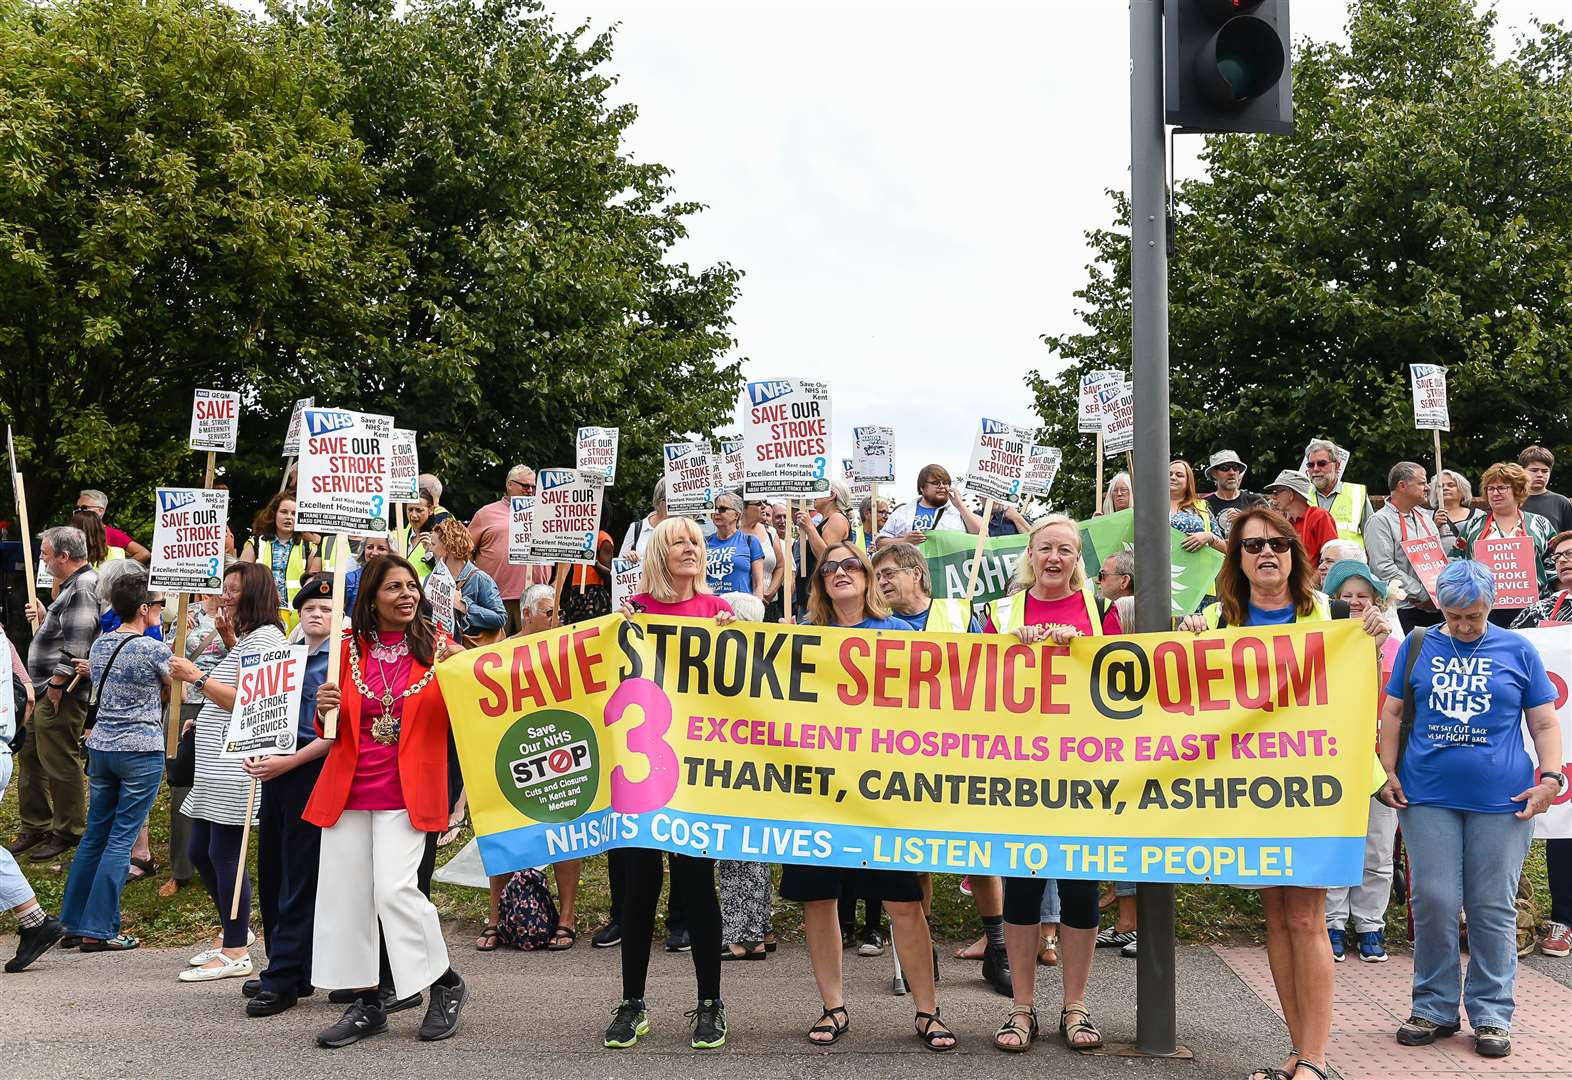 Public 'duped' over stroke unit closure